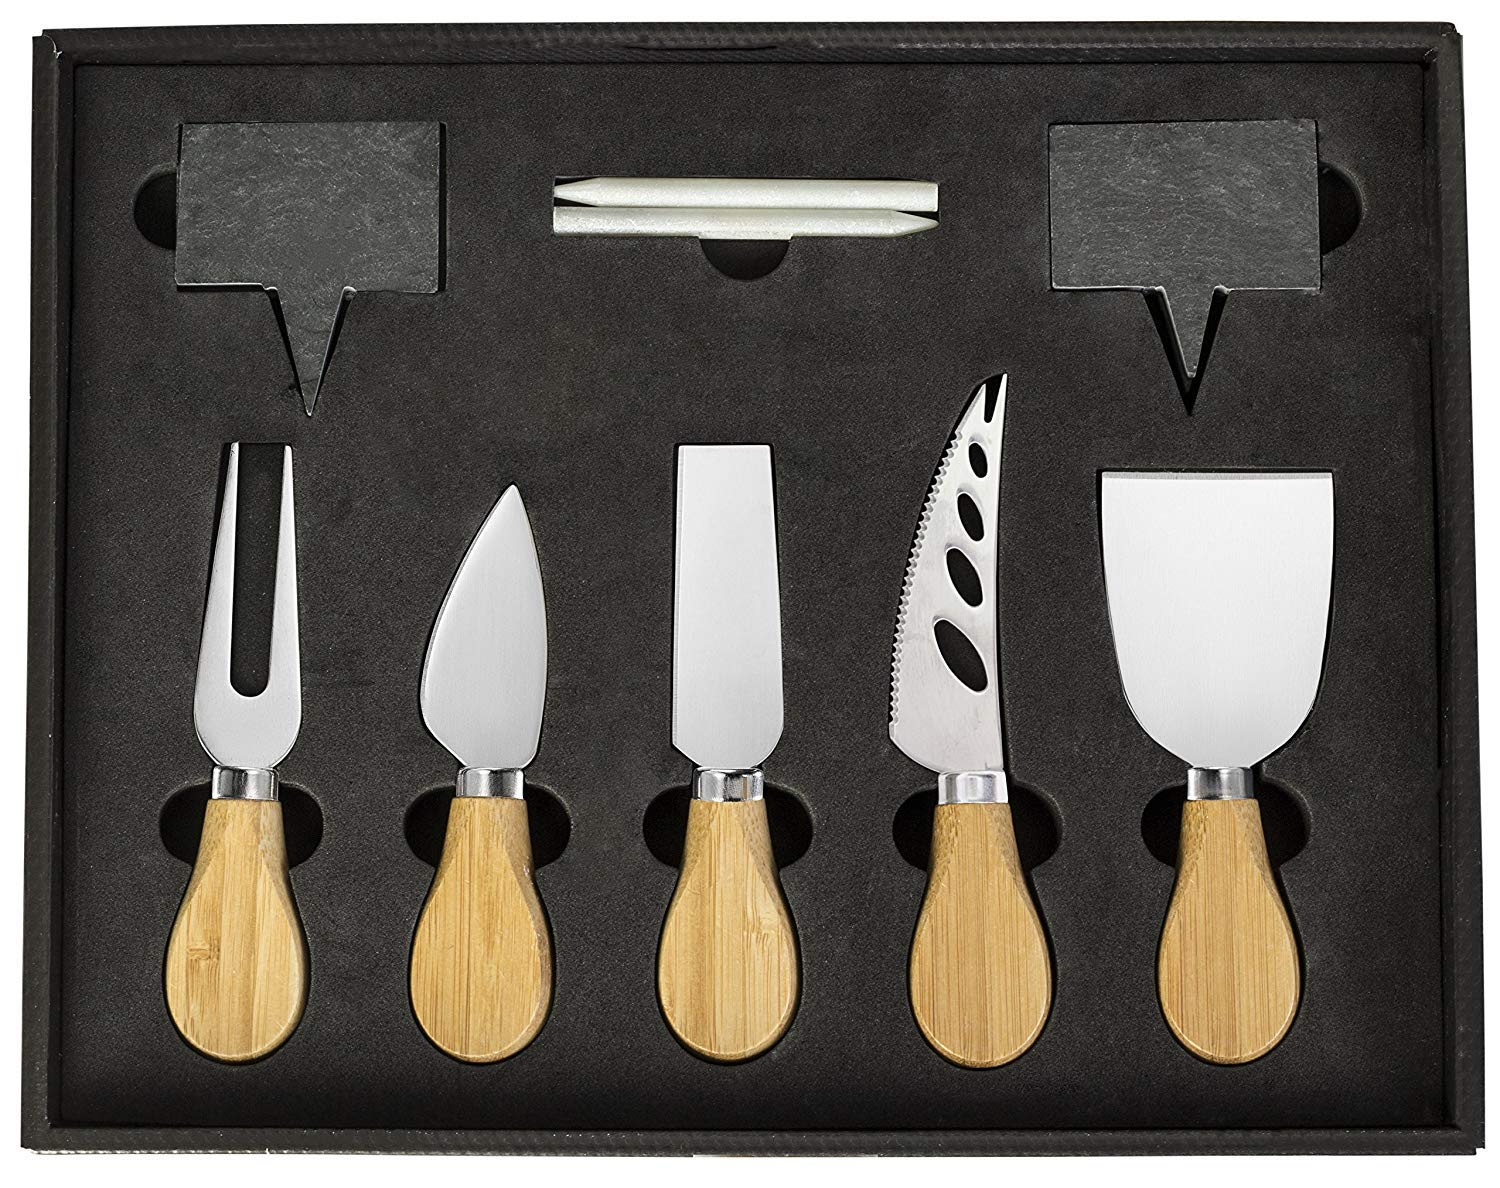 Cheese Knife And Marker Set, 5 Cutlery Knives Stainless Steel Bamboo Handles, 4 Cheese Board Labels Made Of Natural Black Slate Includes 2-Chalk Markers.Gift For All Occasions Upgrade By House Ur Home by House Ur Home (Image #2)